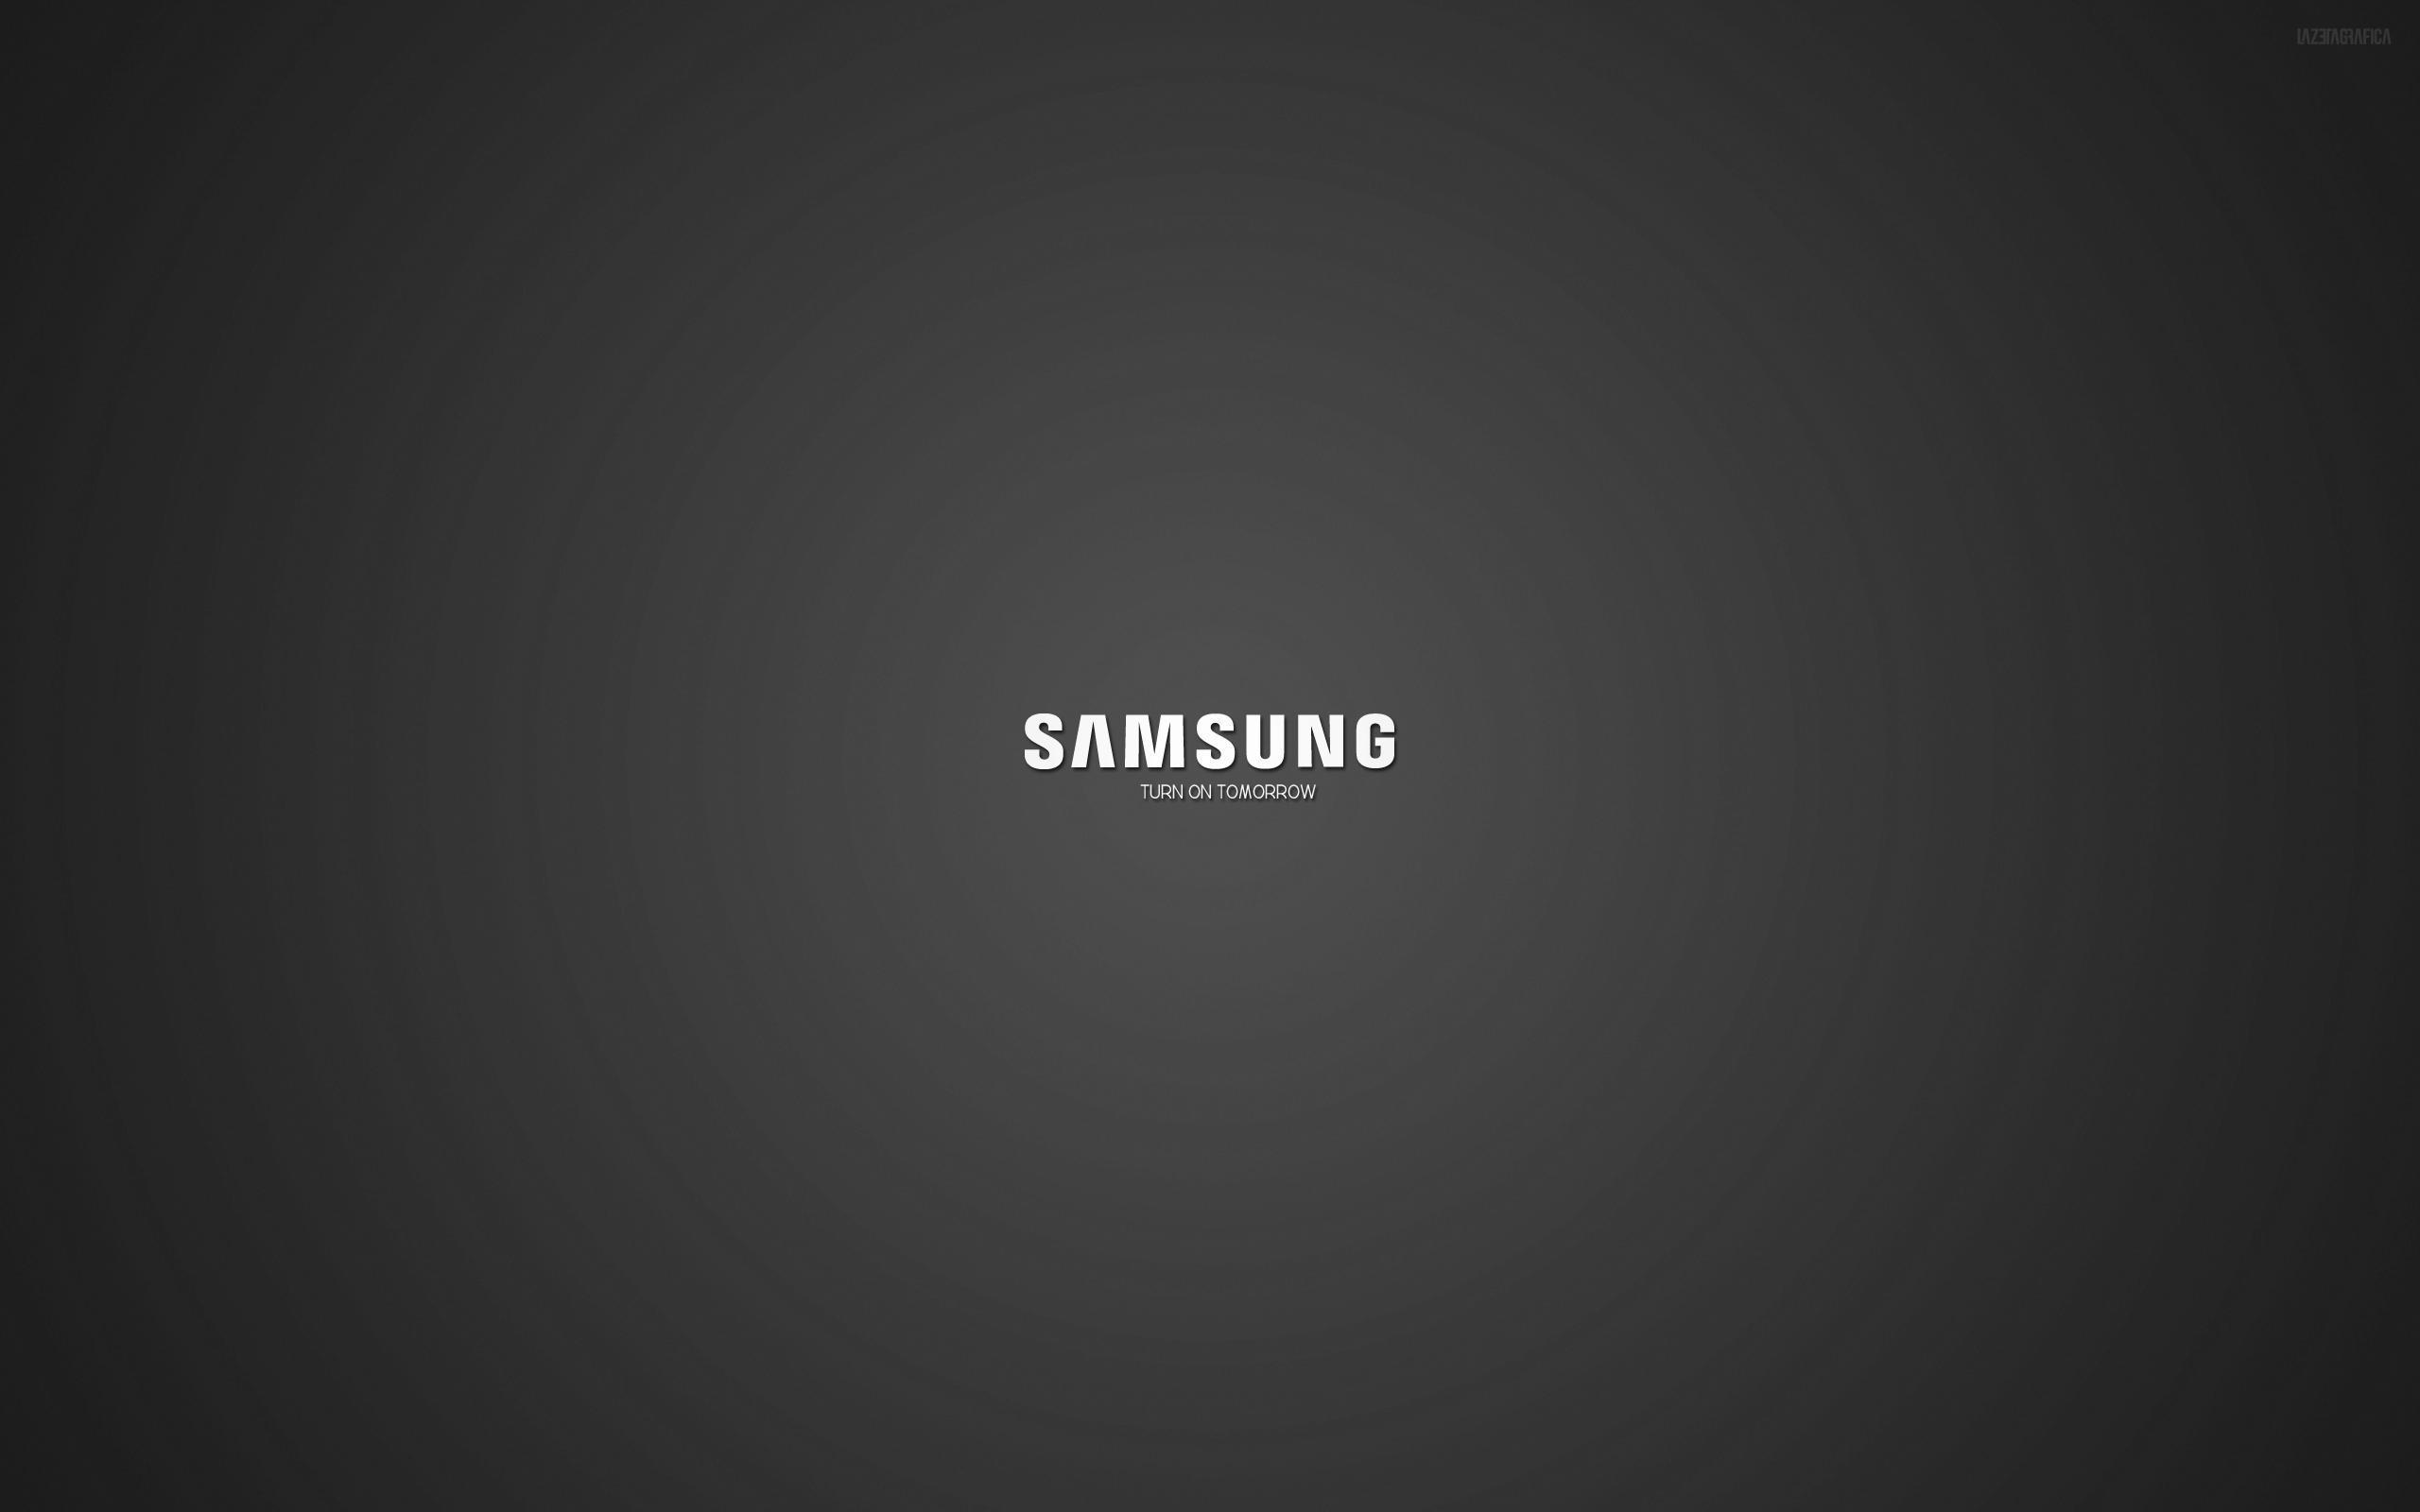 Samsung Logo Wallpaper Posted By Samantha Johnson